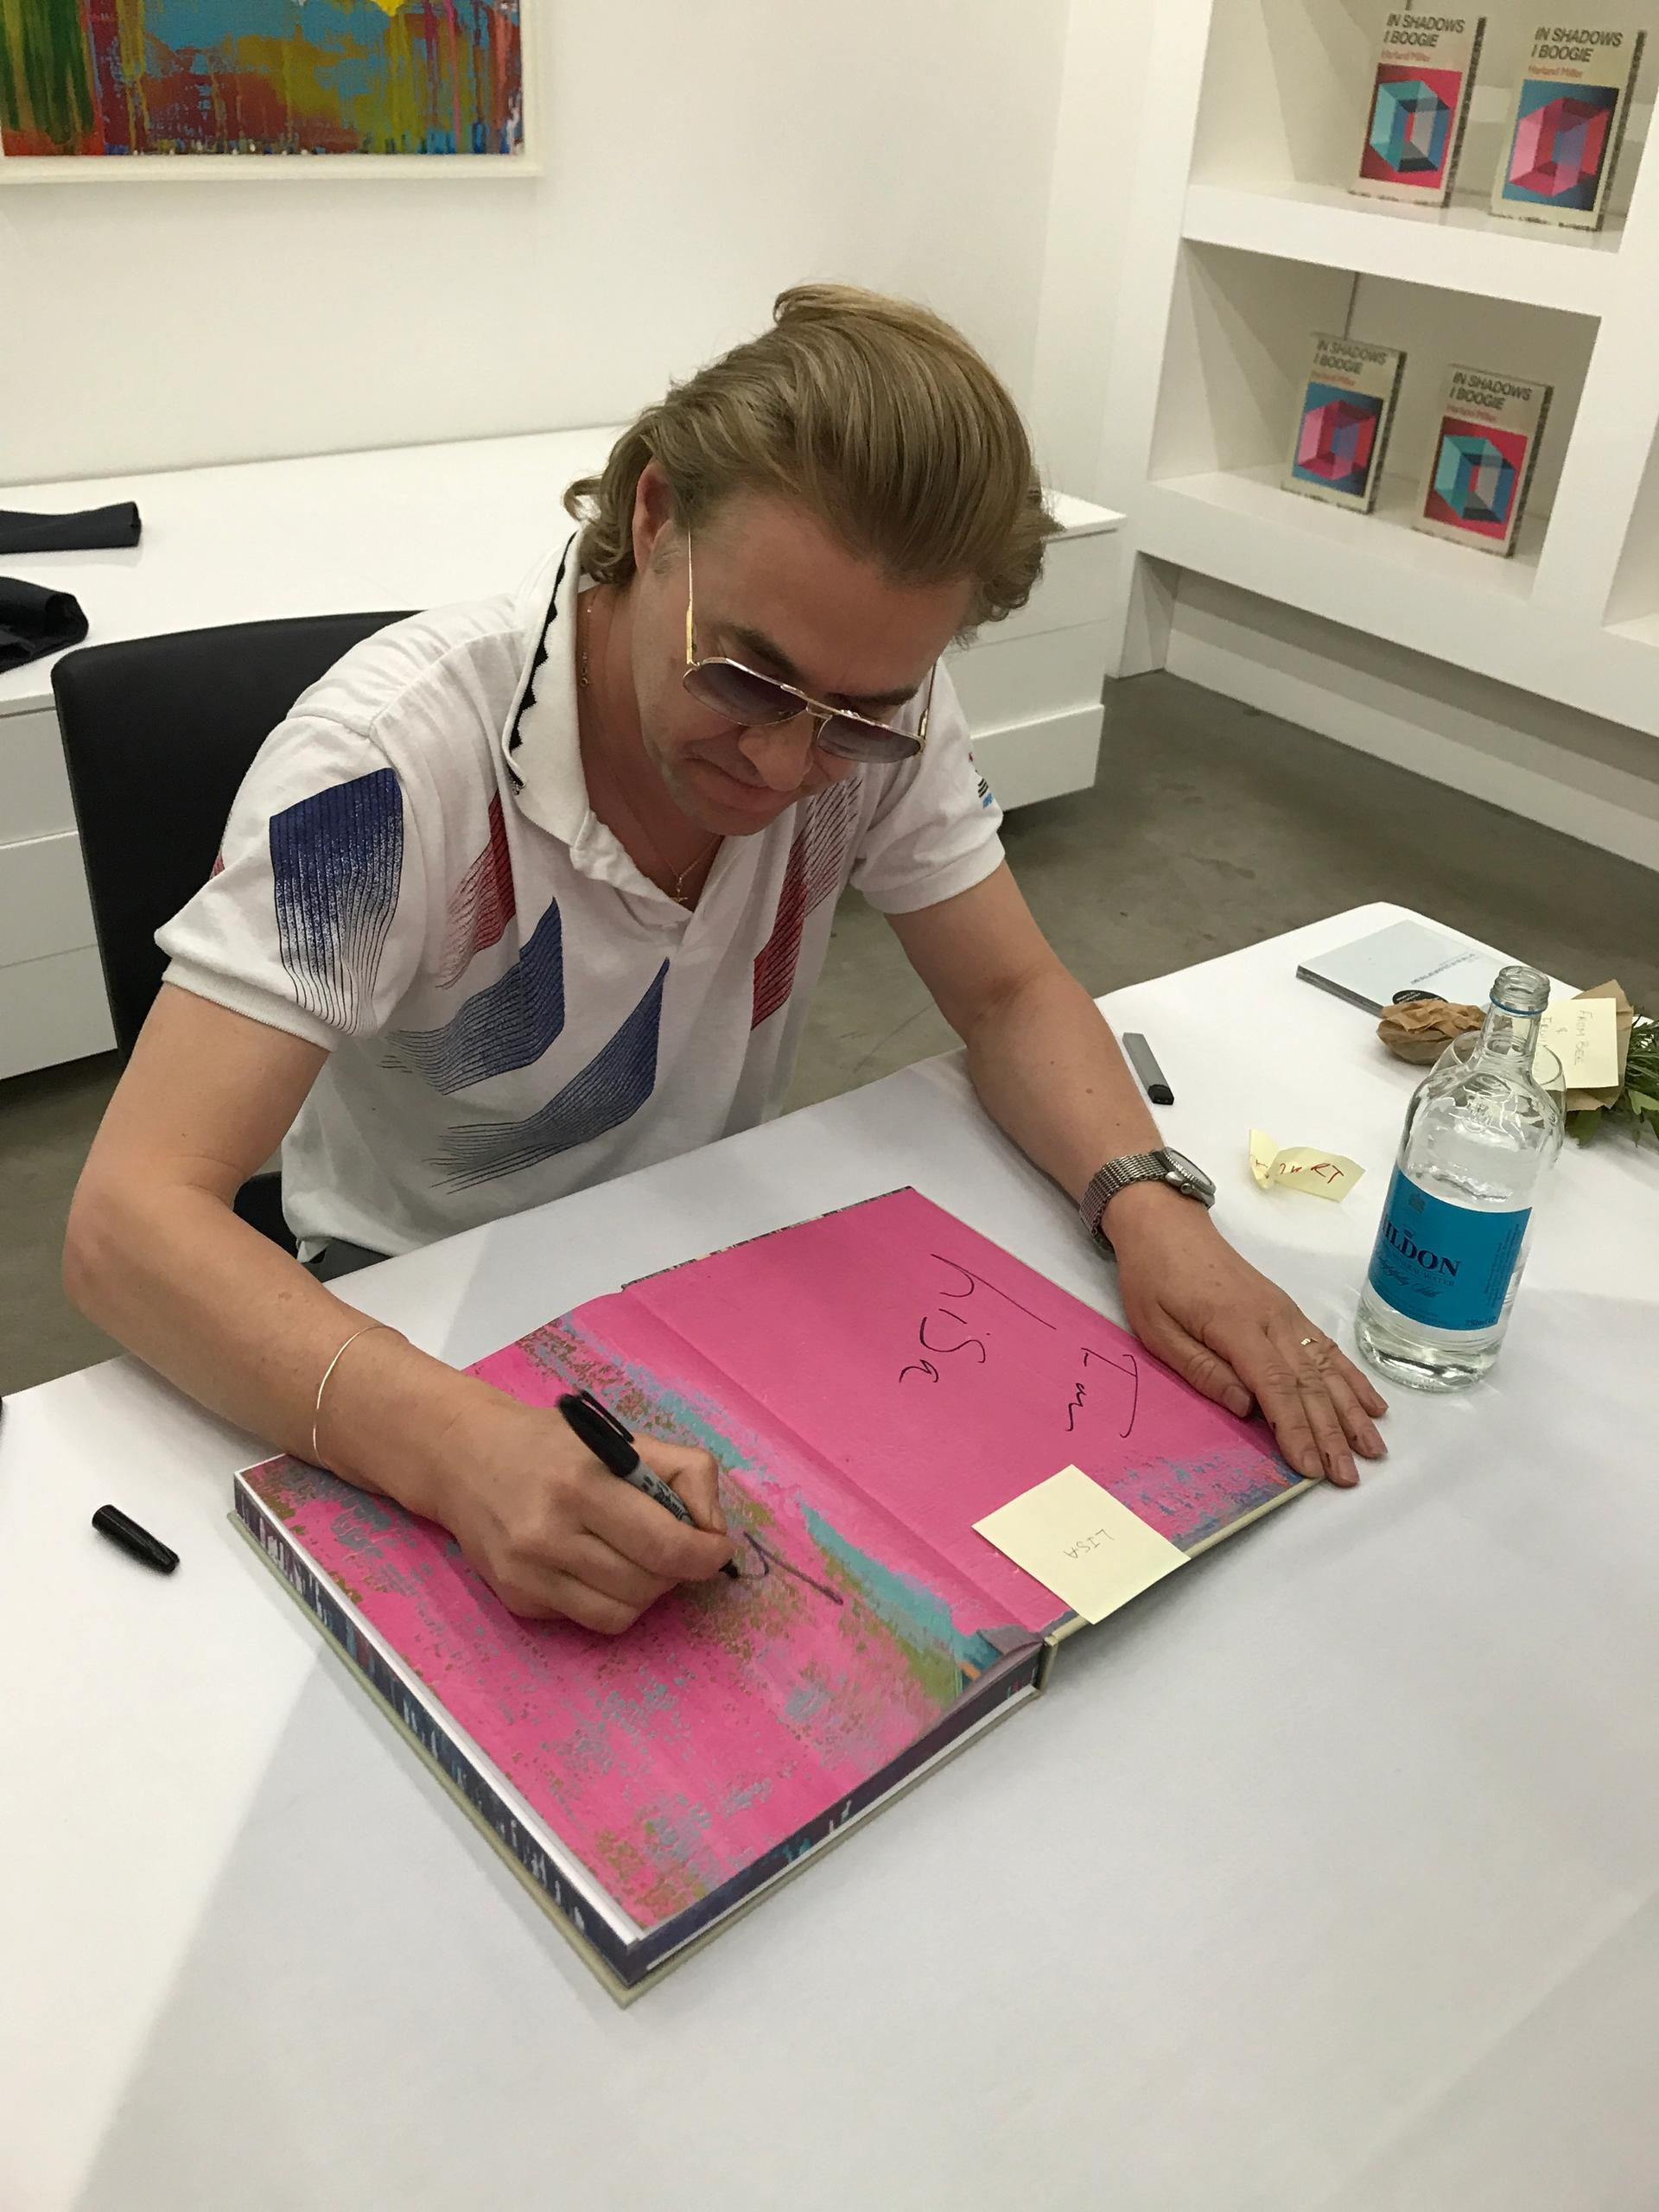 Harland Miller at the White Cube book signing Gareth Harris